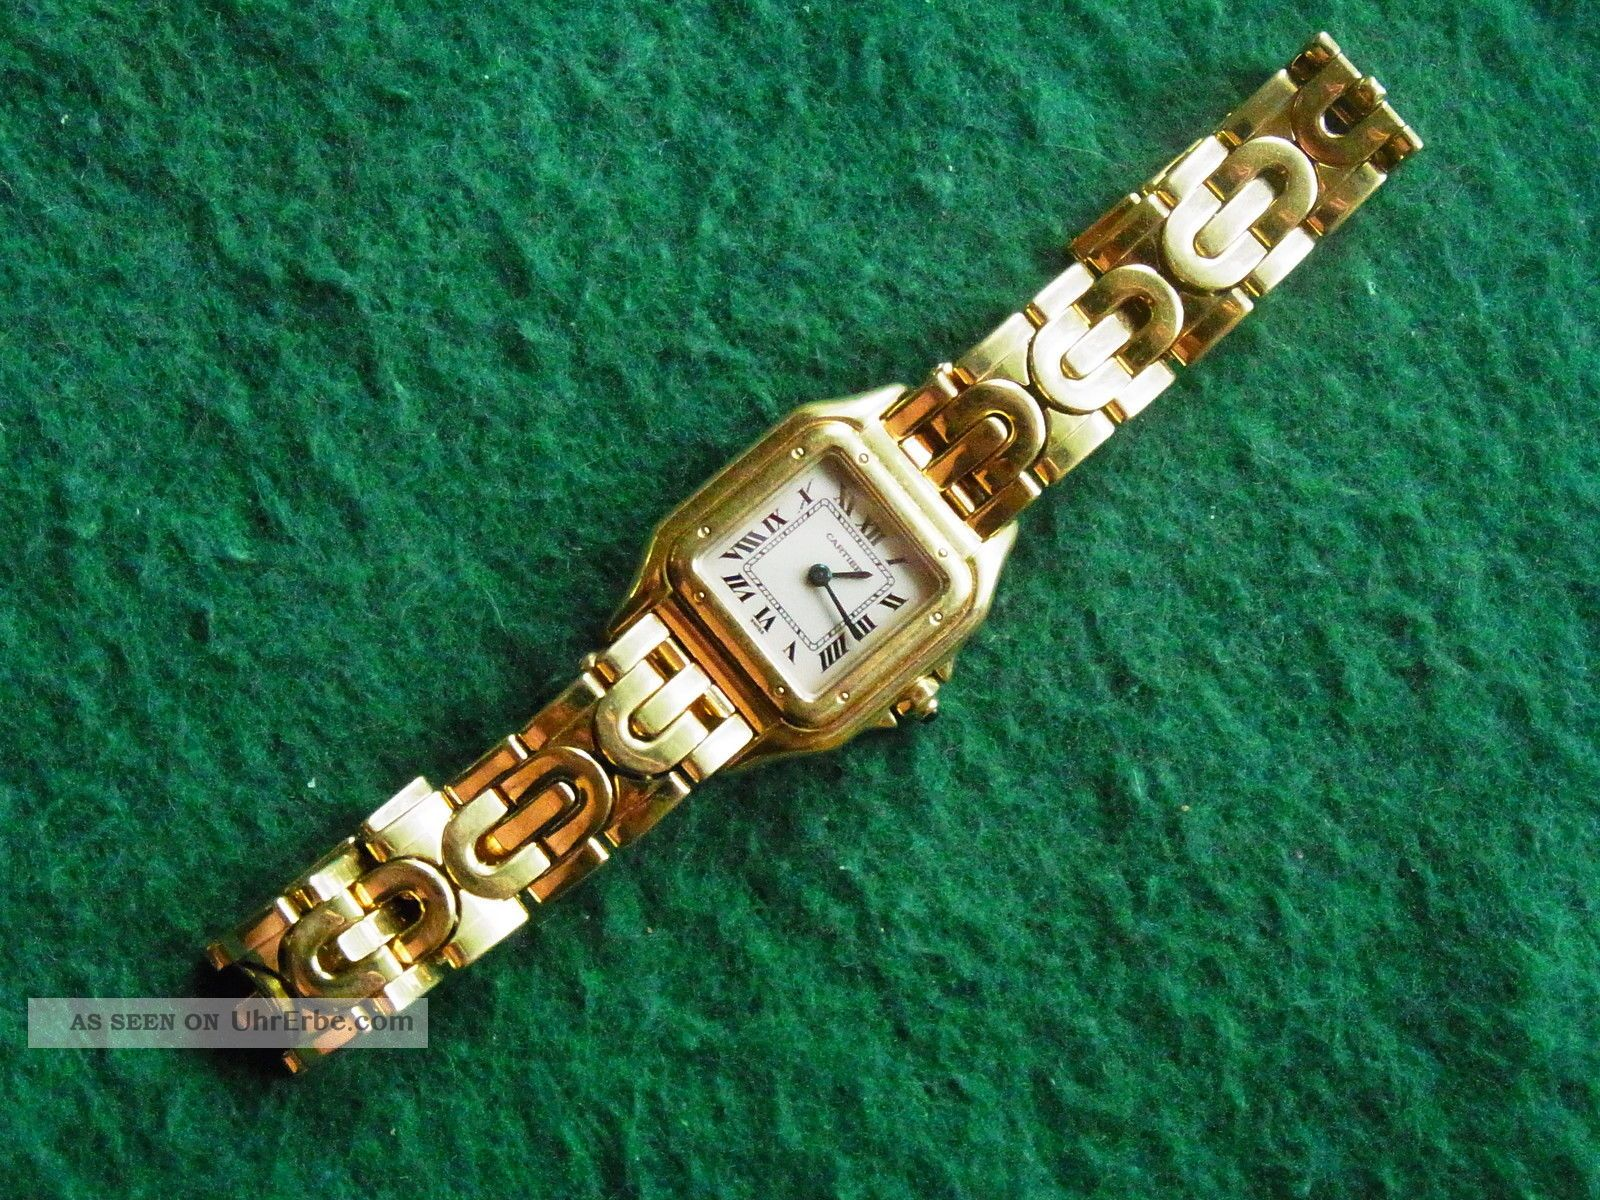 Cartier Lady 18k Gold Panthere Damenuhr Goldband Top Armbanduhren Bild